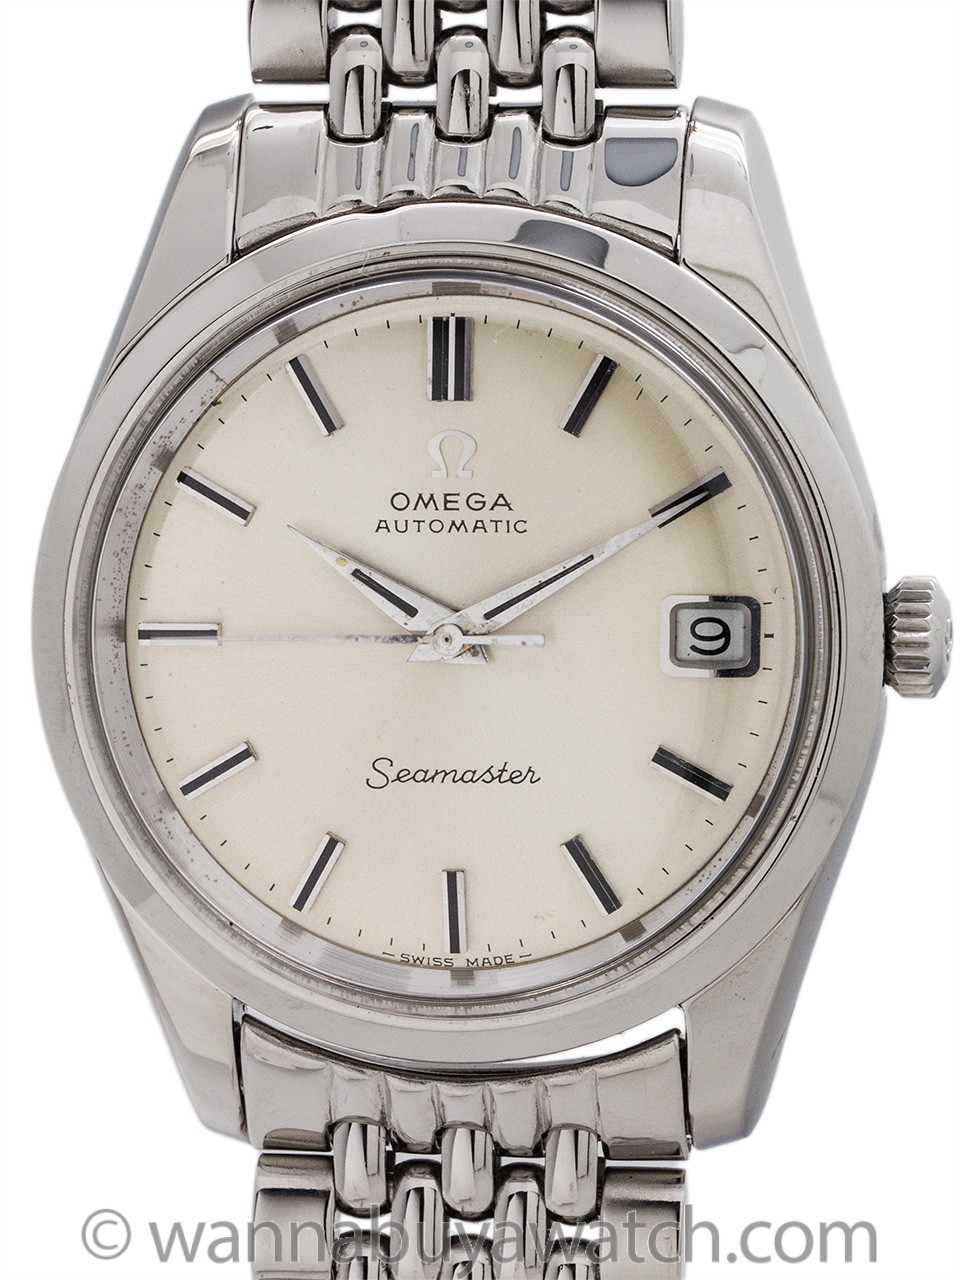 Omega Seamaster Automatic ref 168.024 circa 1970 Exceptional!